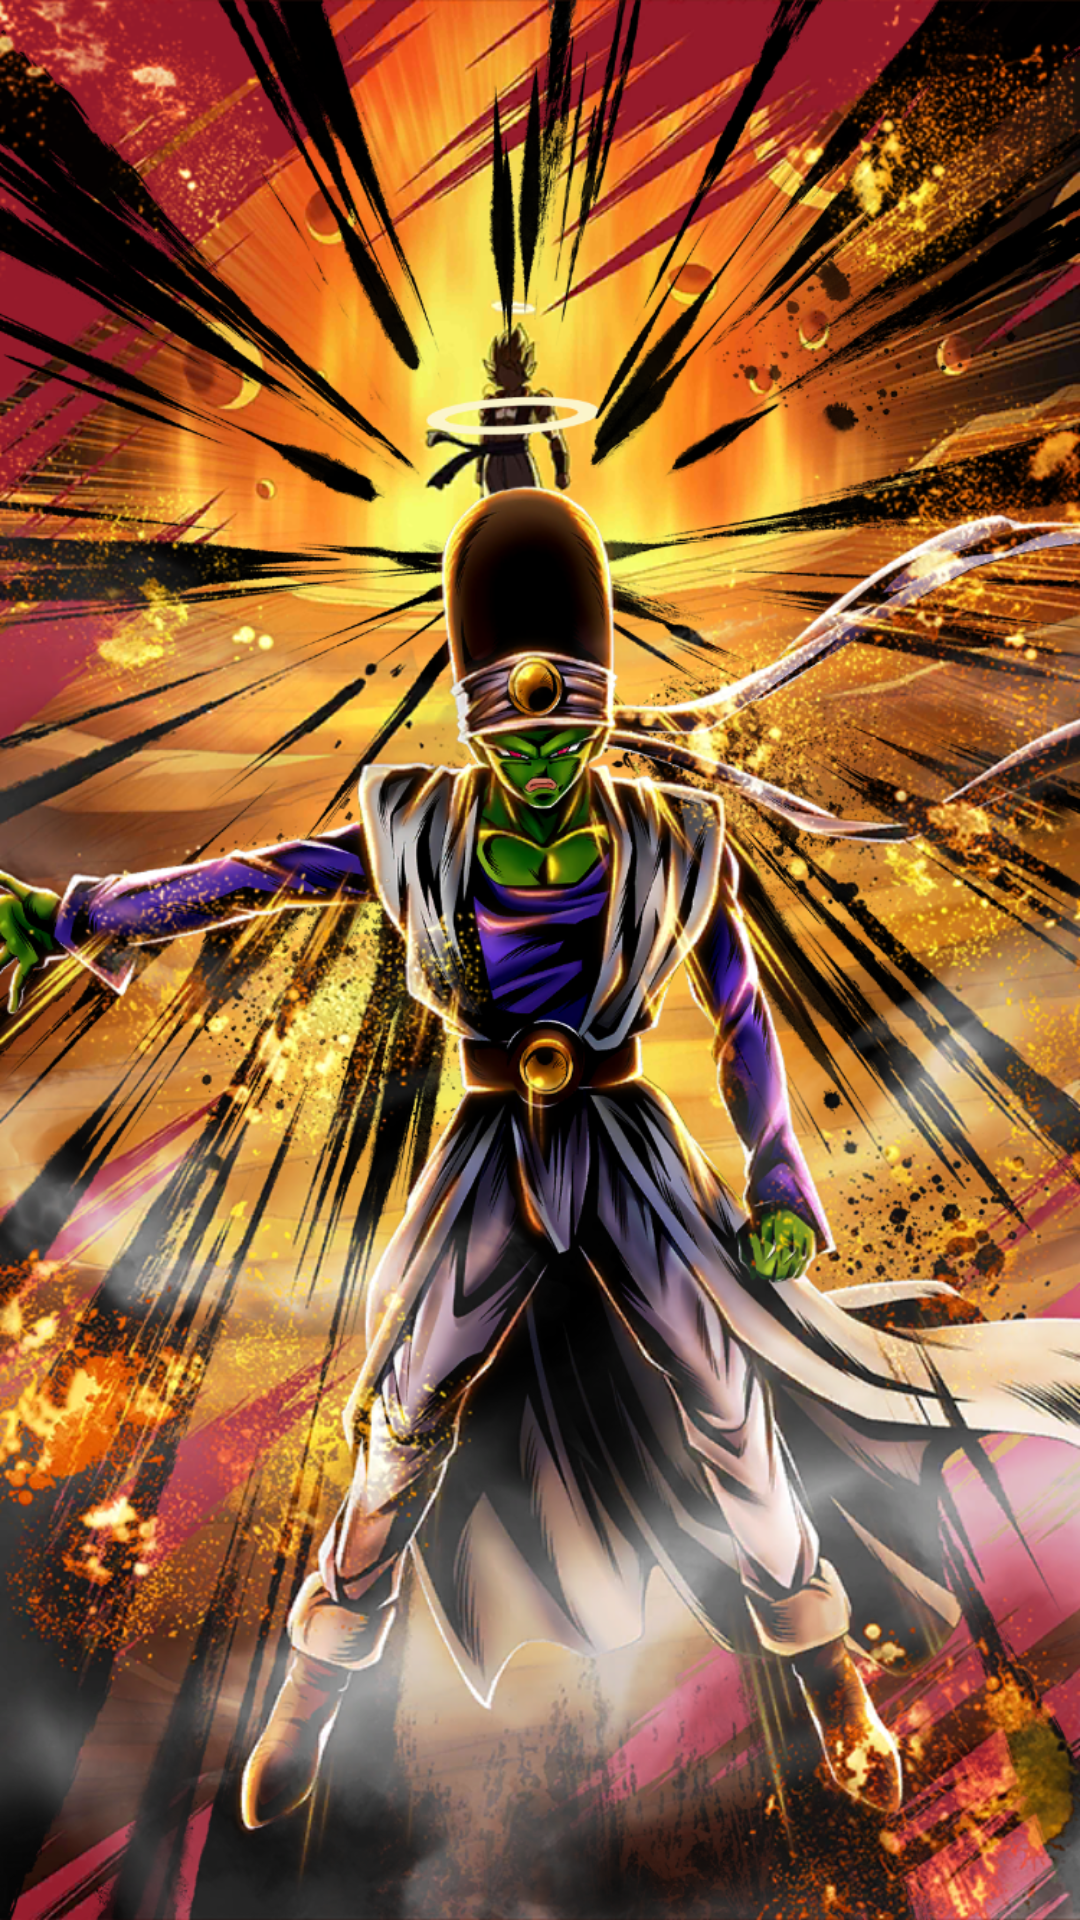 Dragon Ball Legends - All Card Arts - JGamer